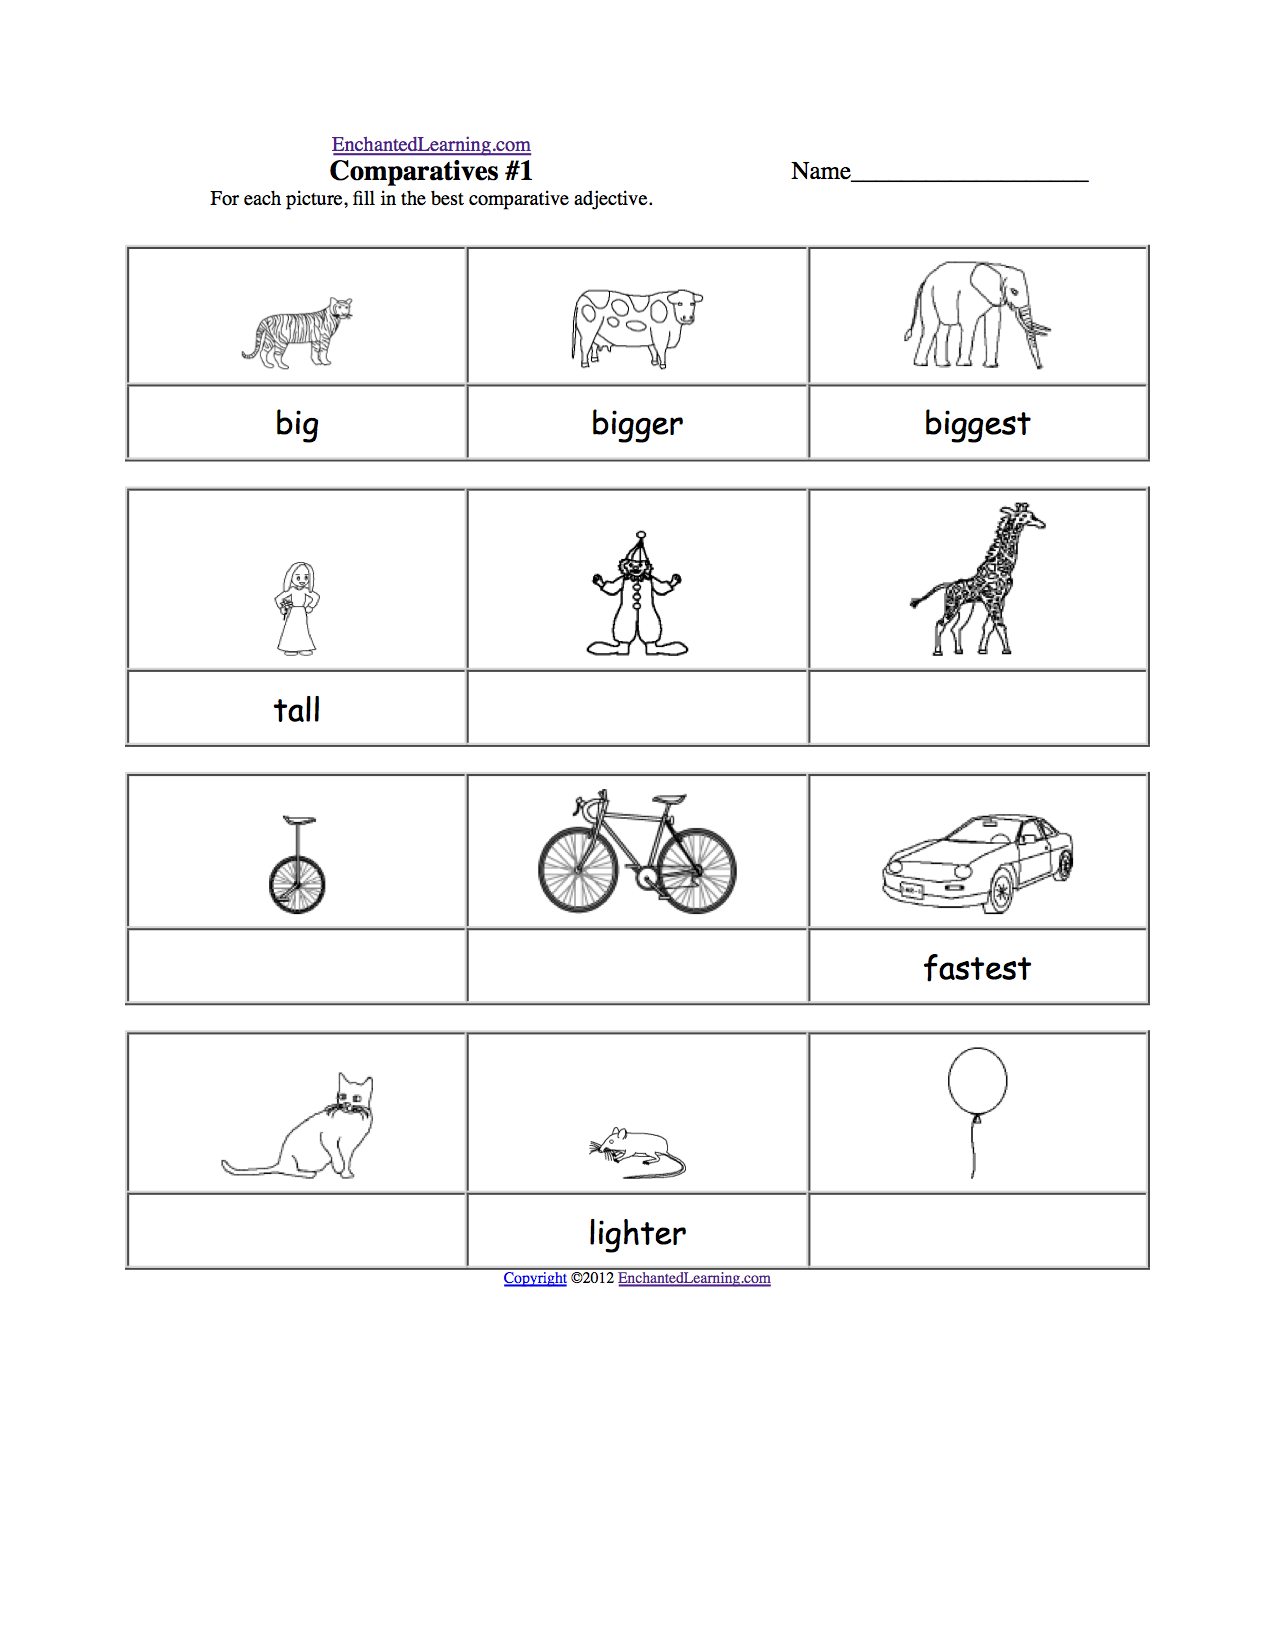 Aldiablosus  Pleasing Adjective Activities And Worksheets Enchantedlearningcom With Outstanding Active And Passive Voice Worksheet Besides Dialectical Behavior Therapy Worksheets Furthermore Function Operations Worksheet With Amazing Mindfulness Worksheets Also Unit Rates Worksheet In Addition Letter Z Worksheets And Math Worksheets Grade  As Well As Similar Triangles Worksheet Answers Additionally Cell Organelle Worksheet From Enchantedlearningcom With Aldiablosus  Outstanding Adjective Activities And Worksheets Enchantedlearningcom With Amazing Active And Passive Voice Worksheet Besides Dialectical Behavior Therapy Worksheets Furthermore Function Operations Worksheet And Pleasing Mindfulness Worksheets Also Unit Rates Worksheet In Addition Letter Z Worksheets From Enchantedlearningcom